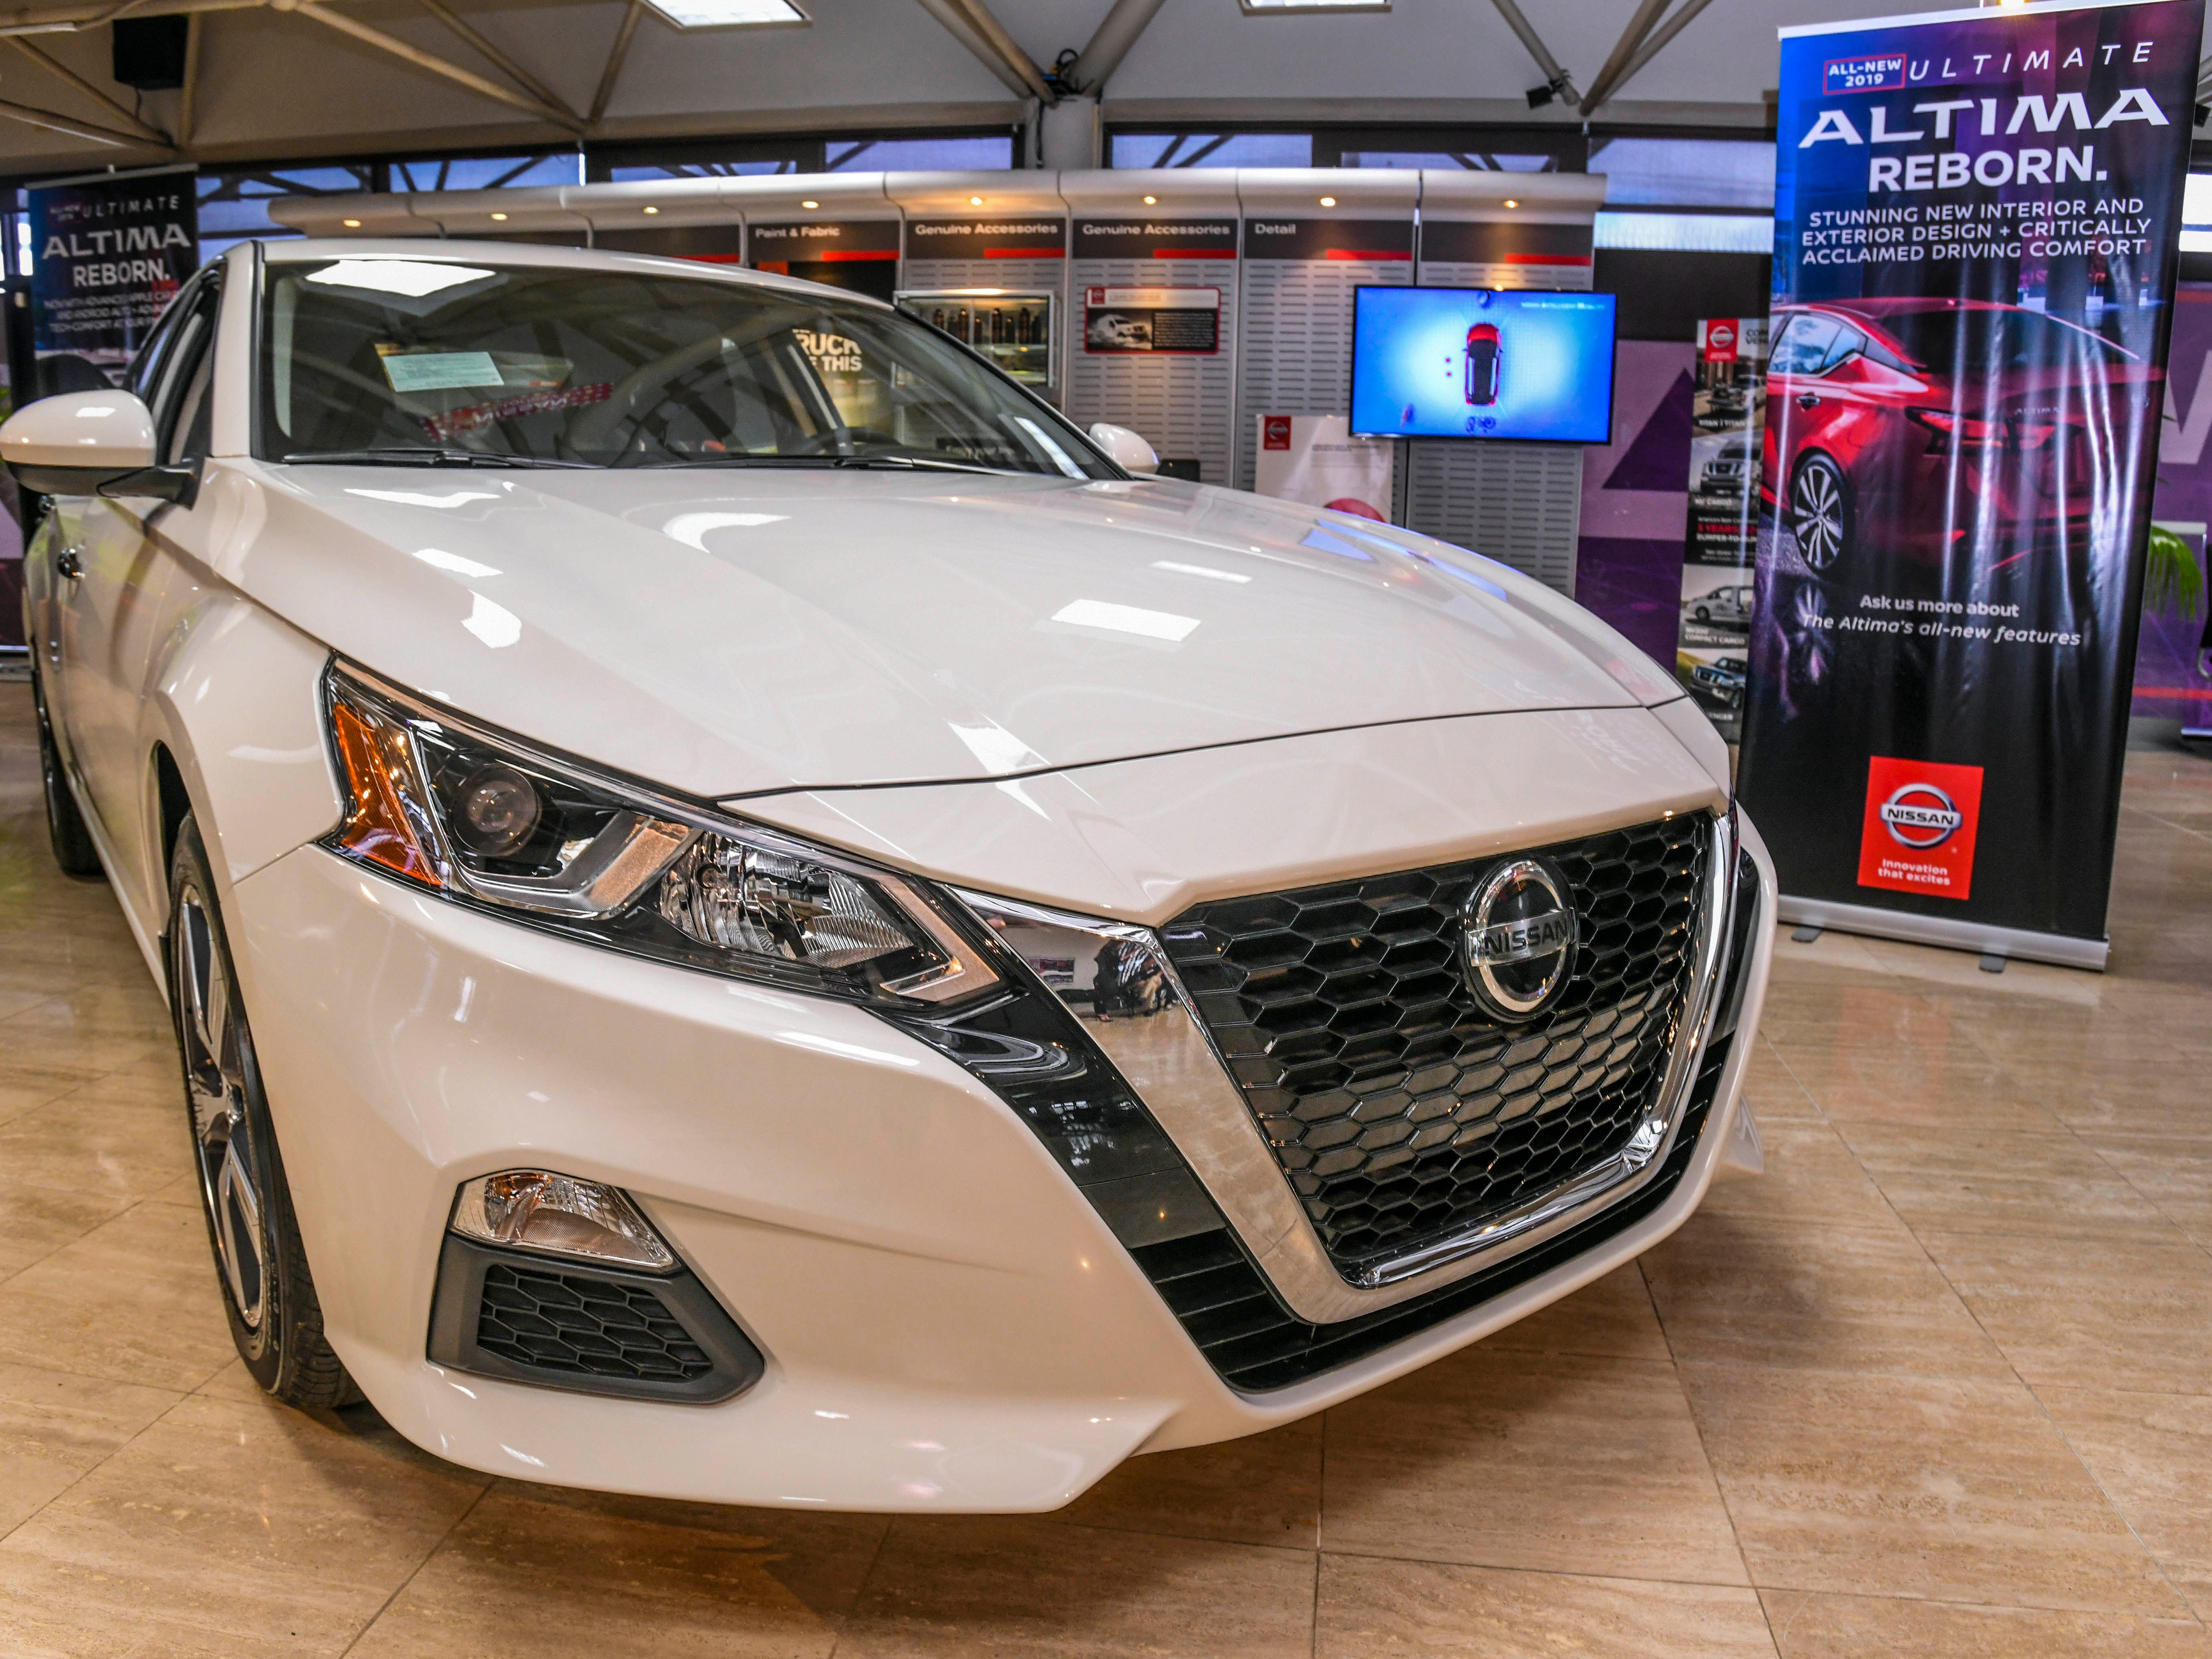 Nissan Guam showcased the latest features added to the redesigned 2019 Nissan Altima after the vehicle's arrival to its Nissan Showroom in upper Tumon on Friday, Jan. 18, 2019. According to Nissan, the vehicle offers an advanced suite of technology and safety features, enhanced driving performance with all-wheel drive and two engine options, including the world's first production-ready Variable Compression Turbo engine. For more images and a video of the vehicle, log on to GuamPDN.com.